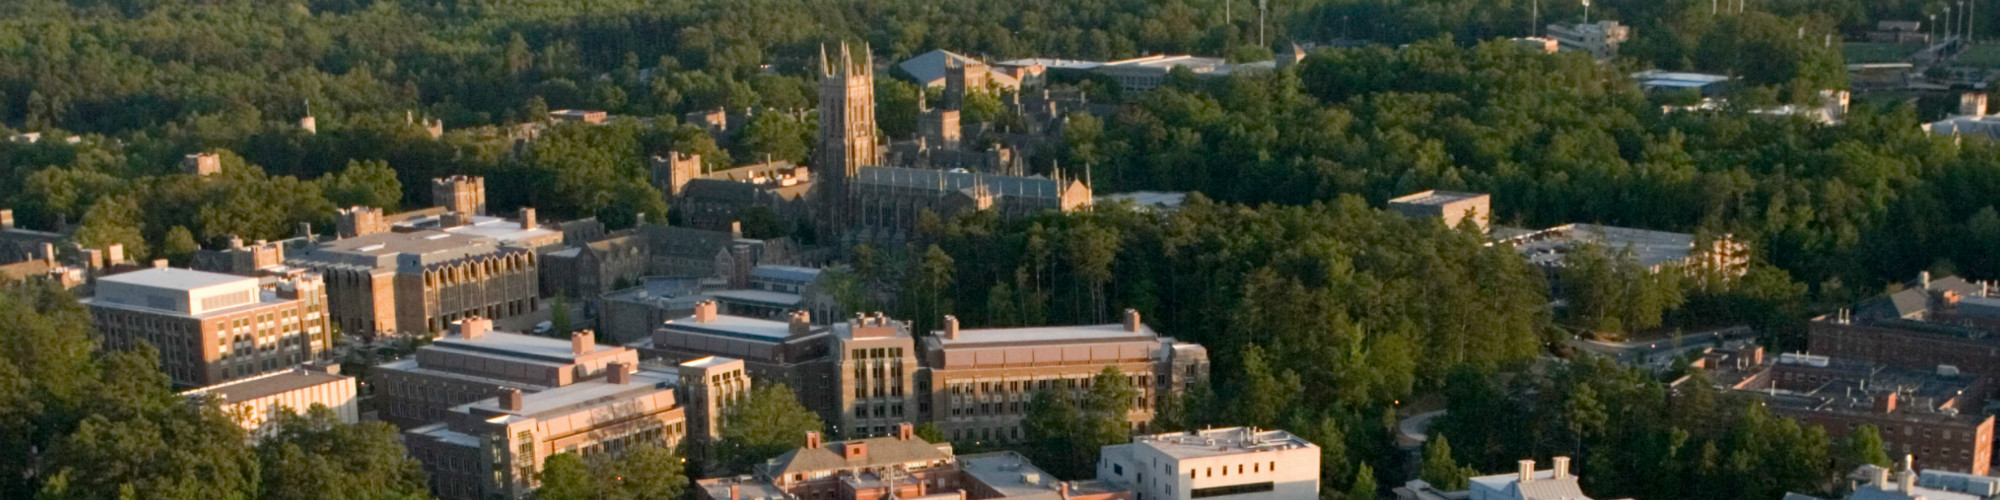 Duke University Pratt School of Engineering | Durham, NC USA